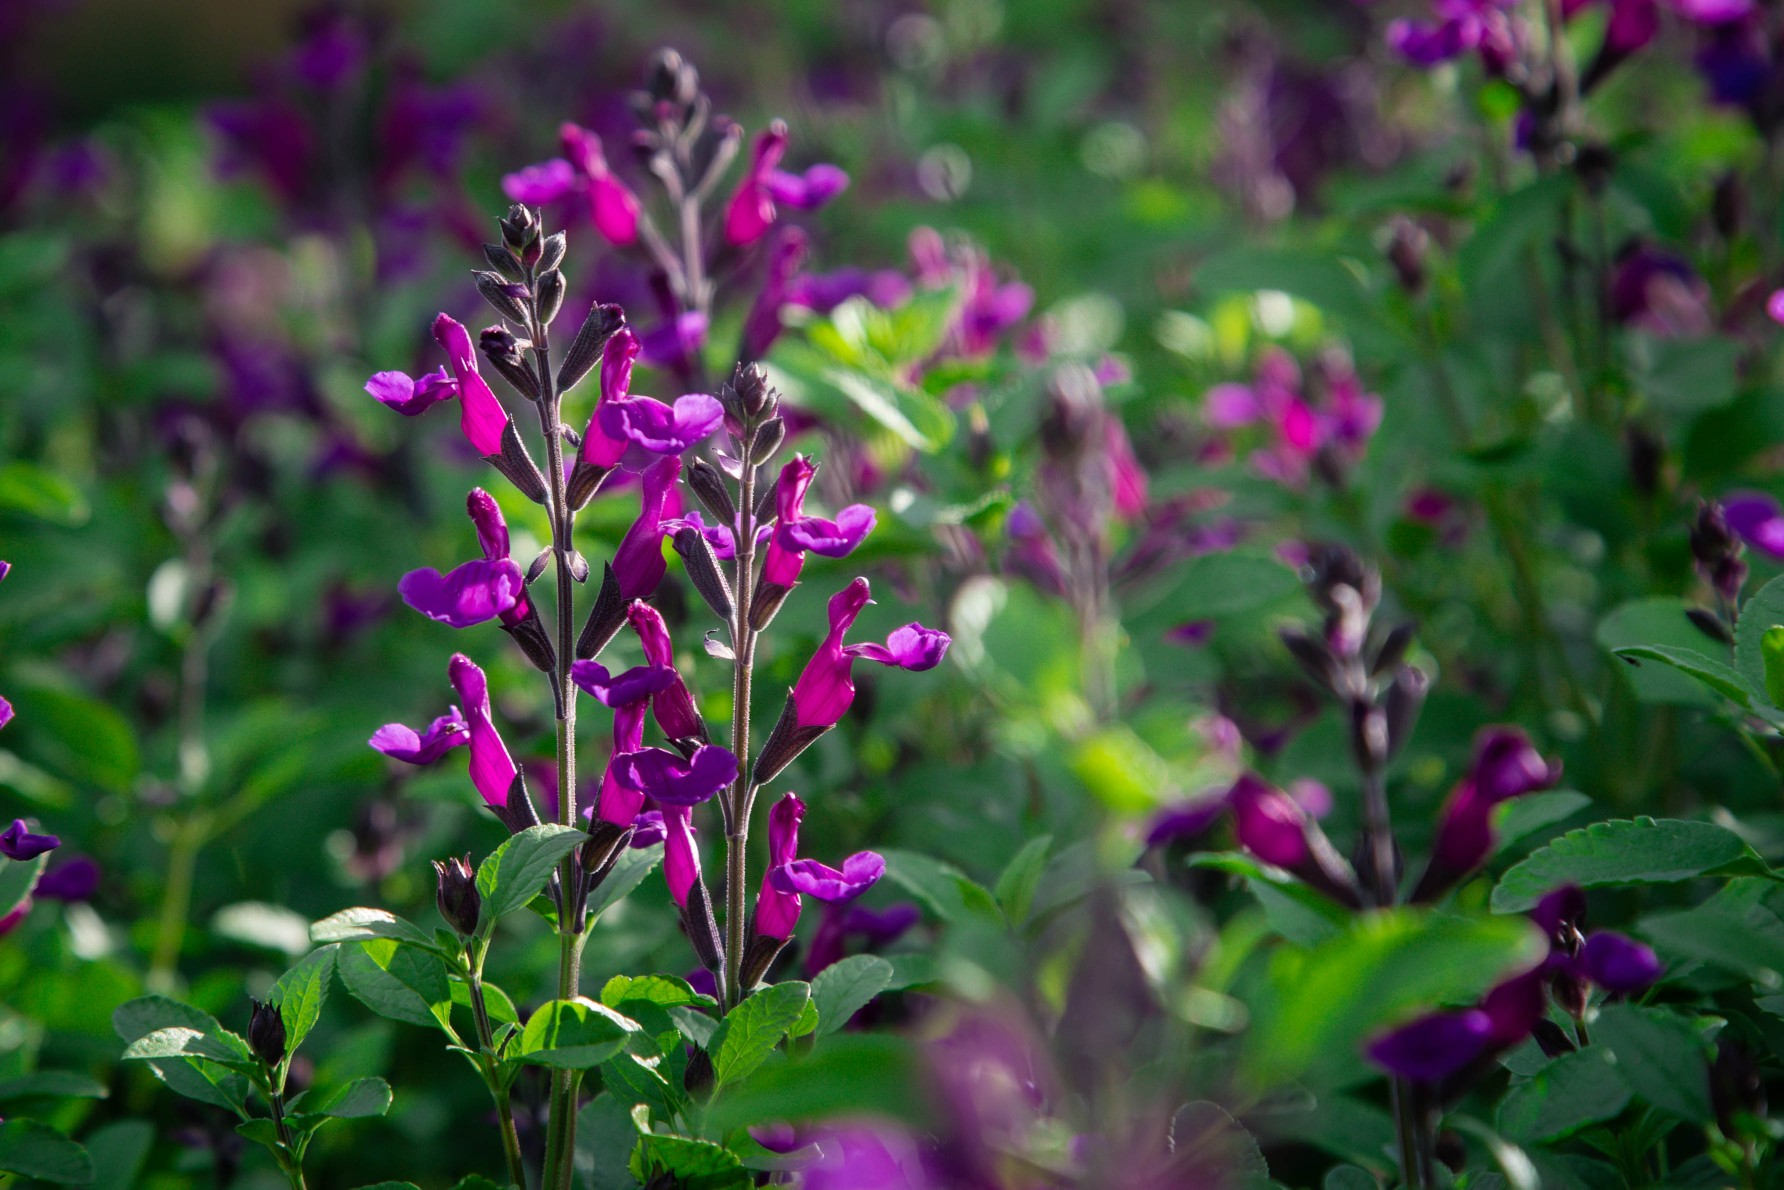 Salvia x jamensis 'Ignition Purple' PP27788